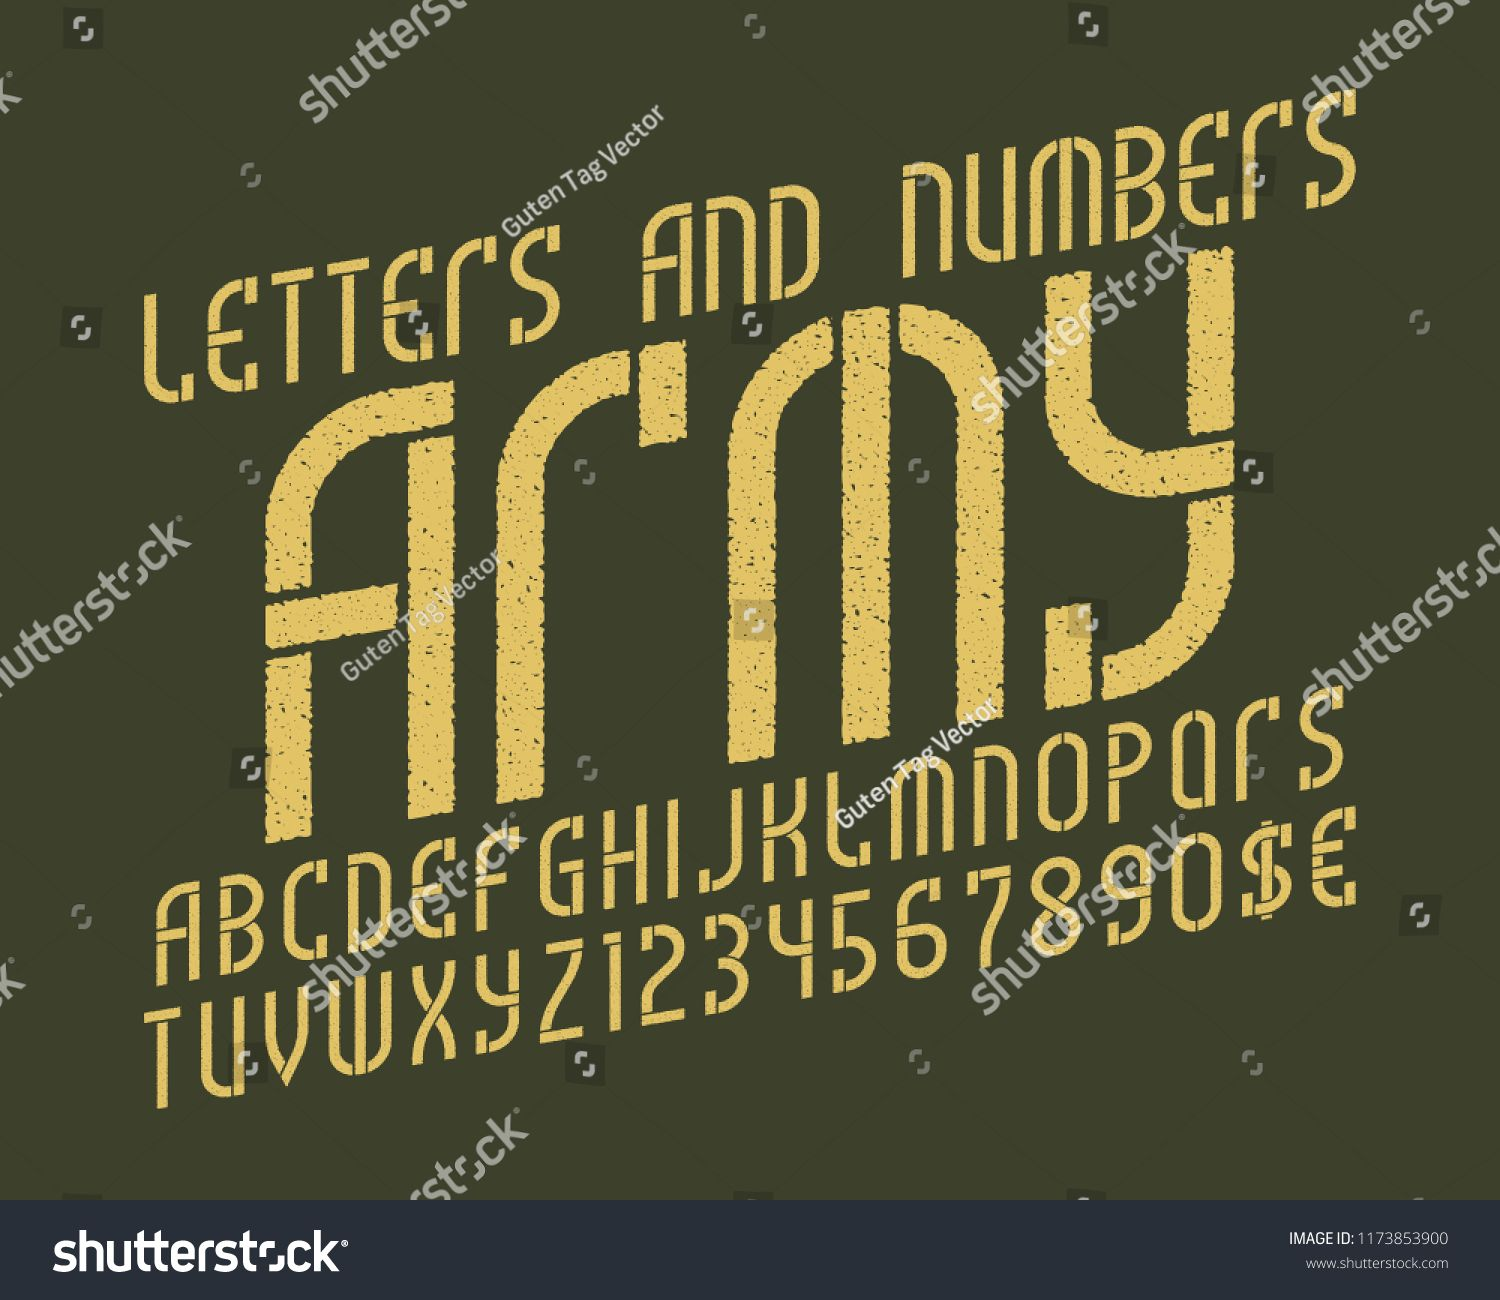 Army alphabet with numbers and currency symbols. Gaming